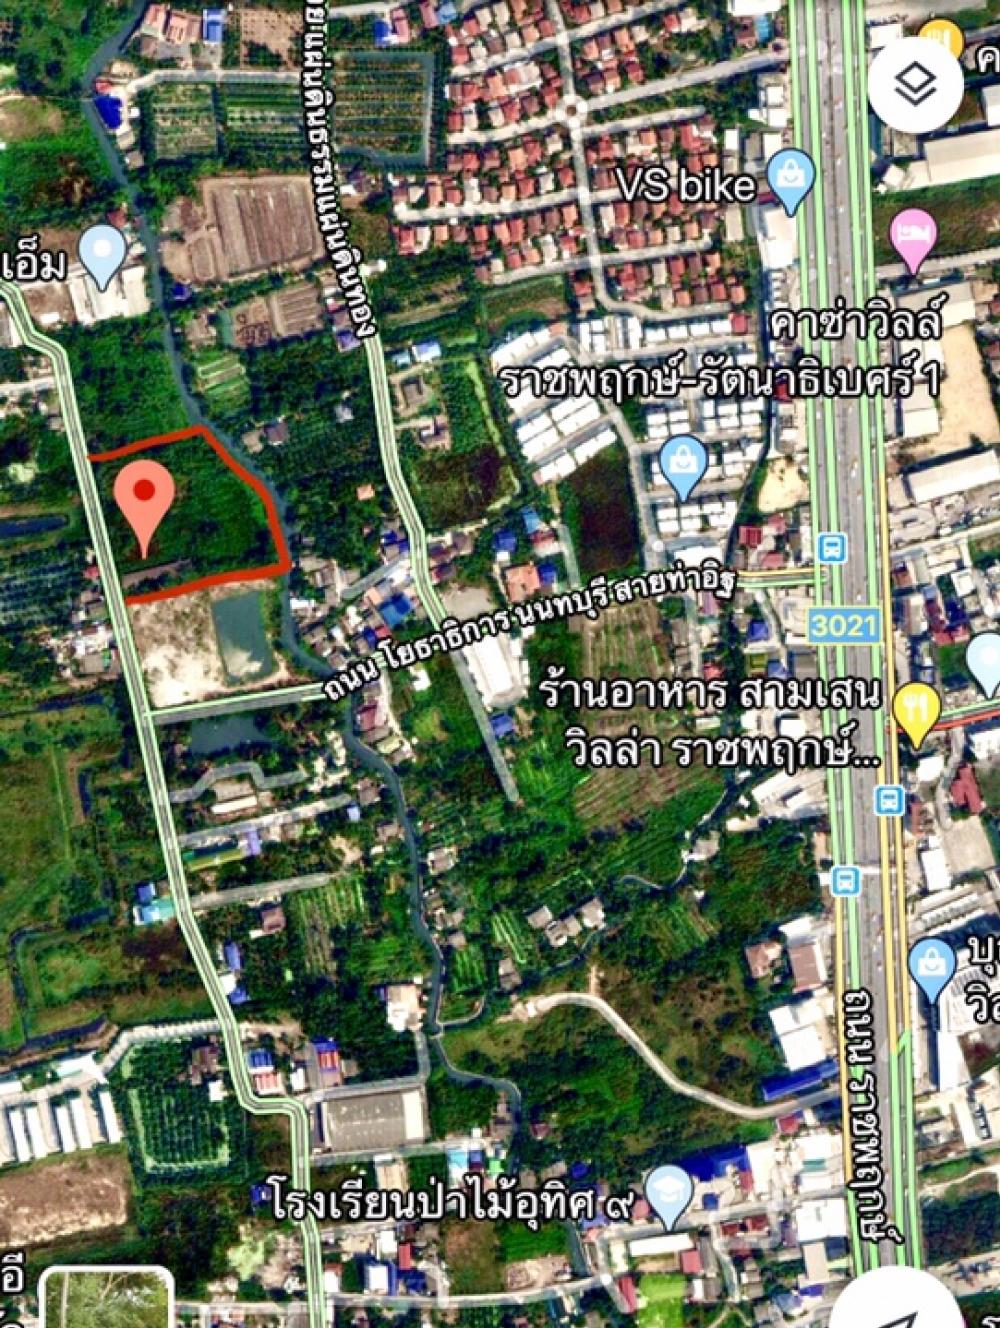 For SaleLandBangkruai, Ratchapruek : Land for sale on Ratchapruek Road 10 Rai, opposite Bunthavorn School, Denla School, Ratchaphruek Soi Bang Rak Noi 2, Bang Phai